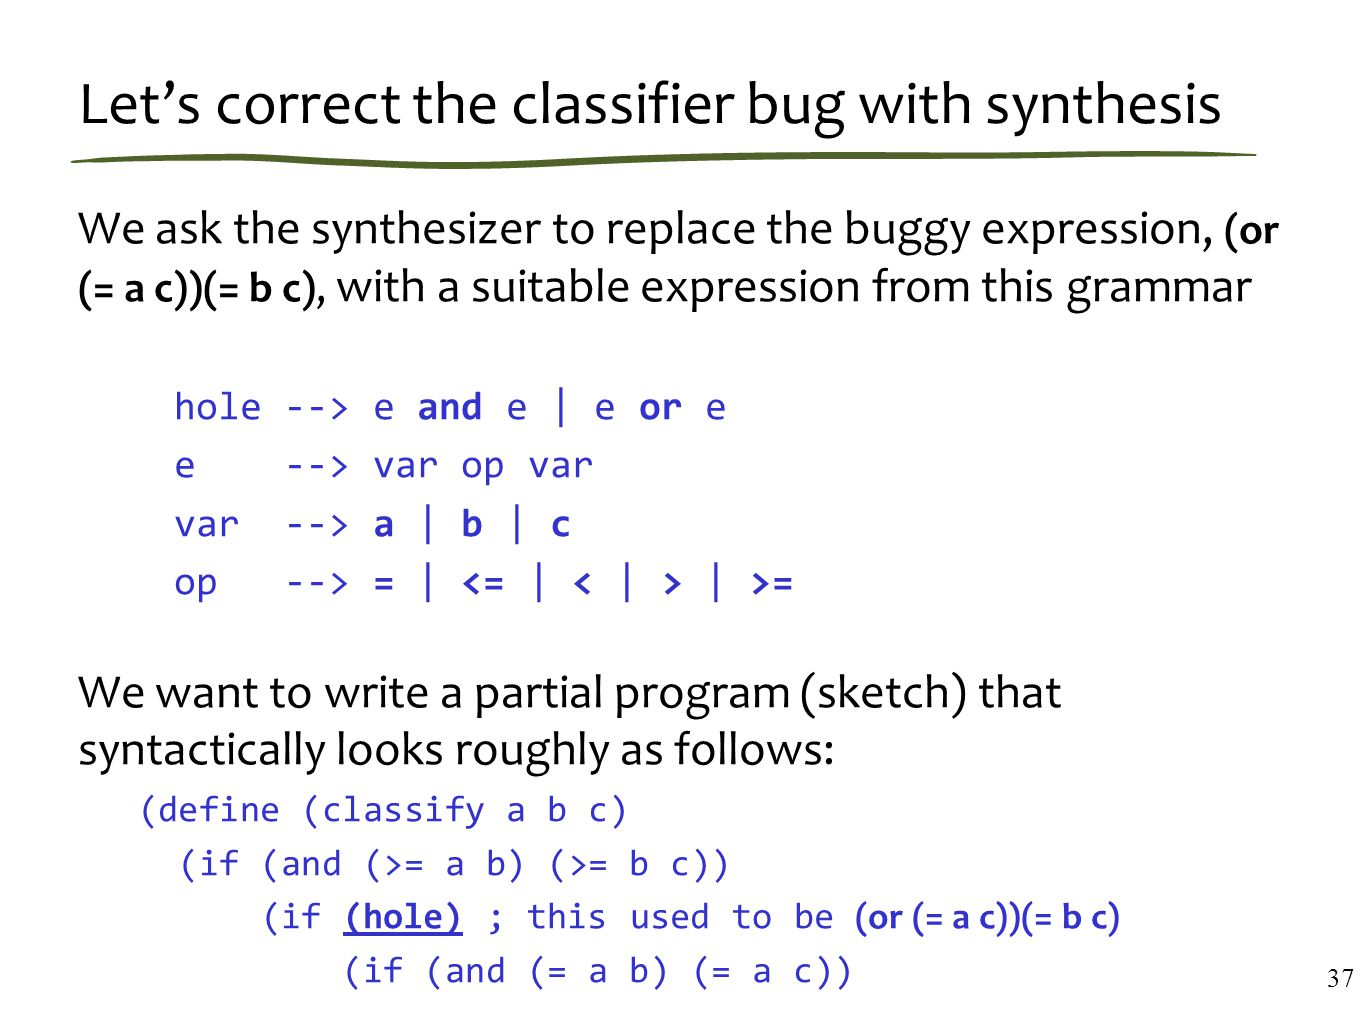 Let's correct the classifier bug with synthesis We ask the synthesizer to replace the buggy expression, (or (= a c))(= b c), with a suitable expression from this grammar hole --> e and e | e or e e --> var op var var --> a | b | c op --> = | | >= We want to write a partial program (sketch) that syntactically looks roughly as follows: (define (classify a b c) (if (and (>= a b) (>= b c)) (if (hole) ; this used to be (or (= a c))(= b c) (if (and (= a b) (= a c)) … 37